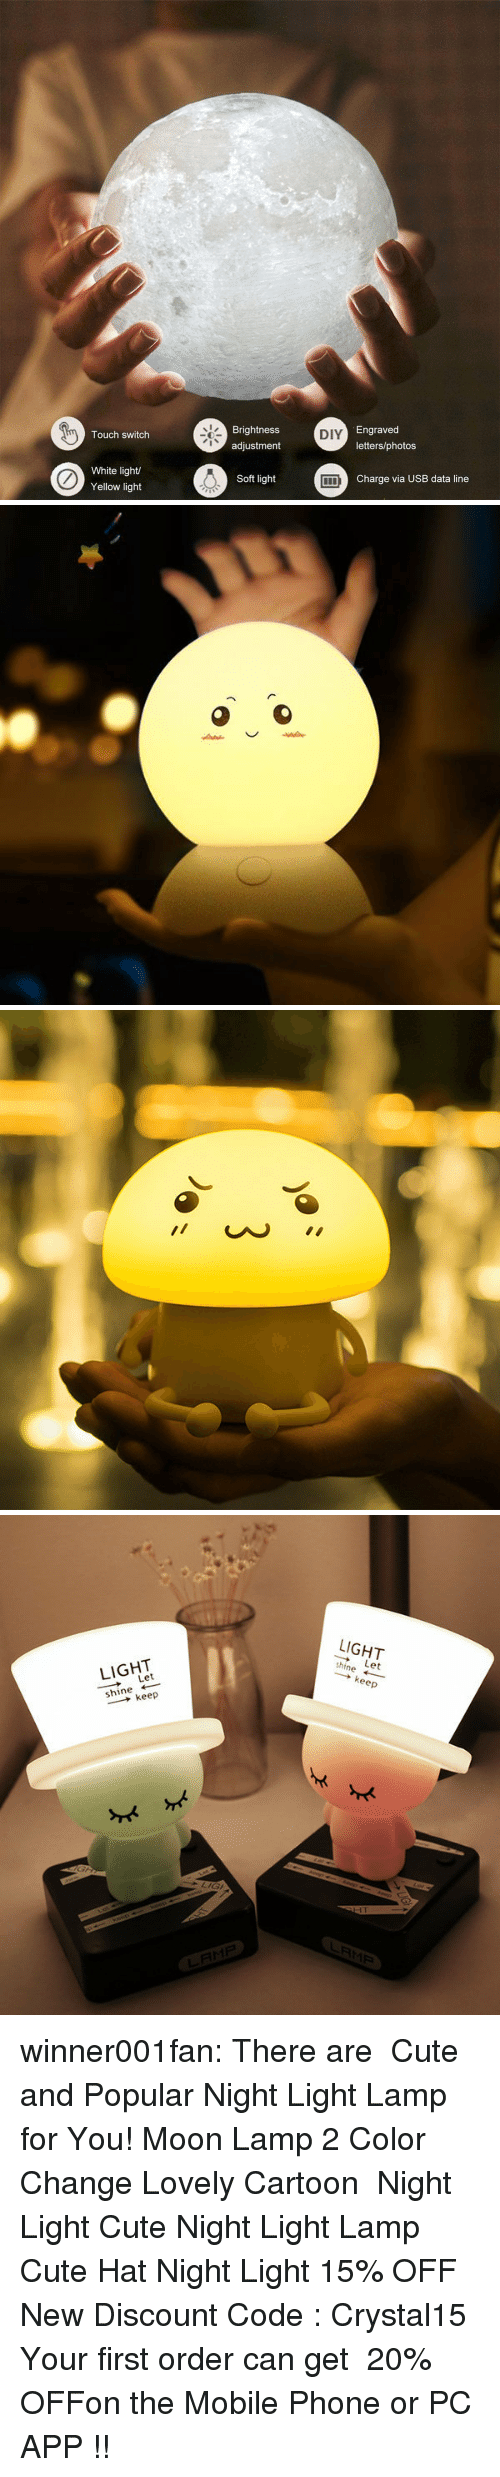 First Order: Brightness  adjustment  Engraved  letters/photos  Touch switch  DIY  White light  Yellow light  Soft light  Charge via USB data line   LIGHT  LIGHT  ー→ Let  shine ←  → keep  hine Let  → keep  LRM尸 winner001fan: There are Cute and Popular Night Light Lamp for You! Moon Lamp 2 Color Change Lovely Cartoon Night Light Cute Night Light Lamp Cute Hat Night Light 15% OFF New Discount Code : Crystal15 ✧Your first order can get 20% OFFon the Mobile Phone or PC APP !!